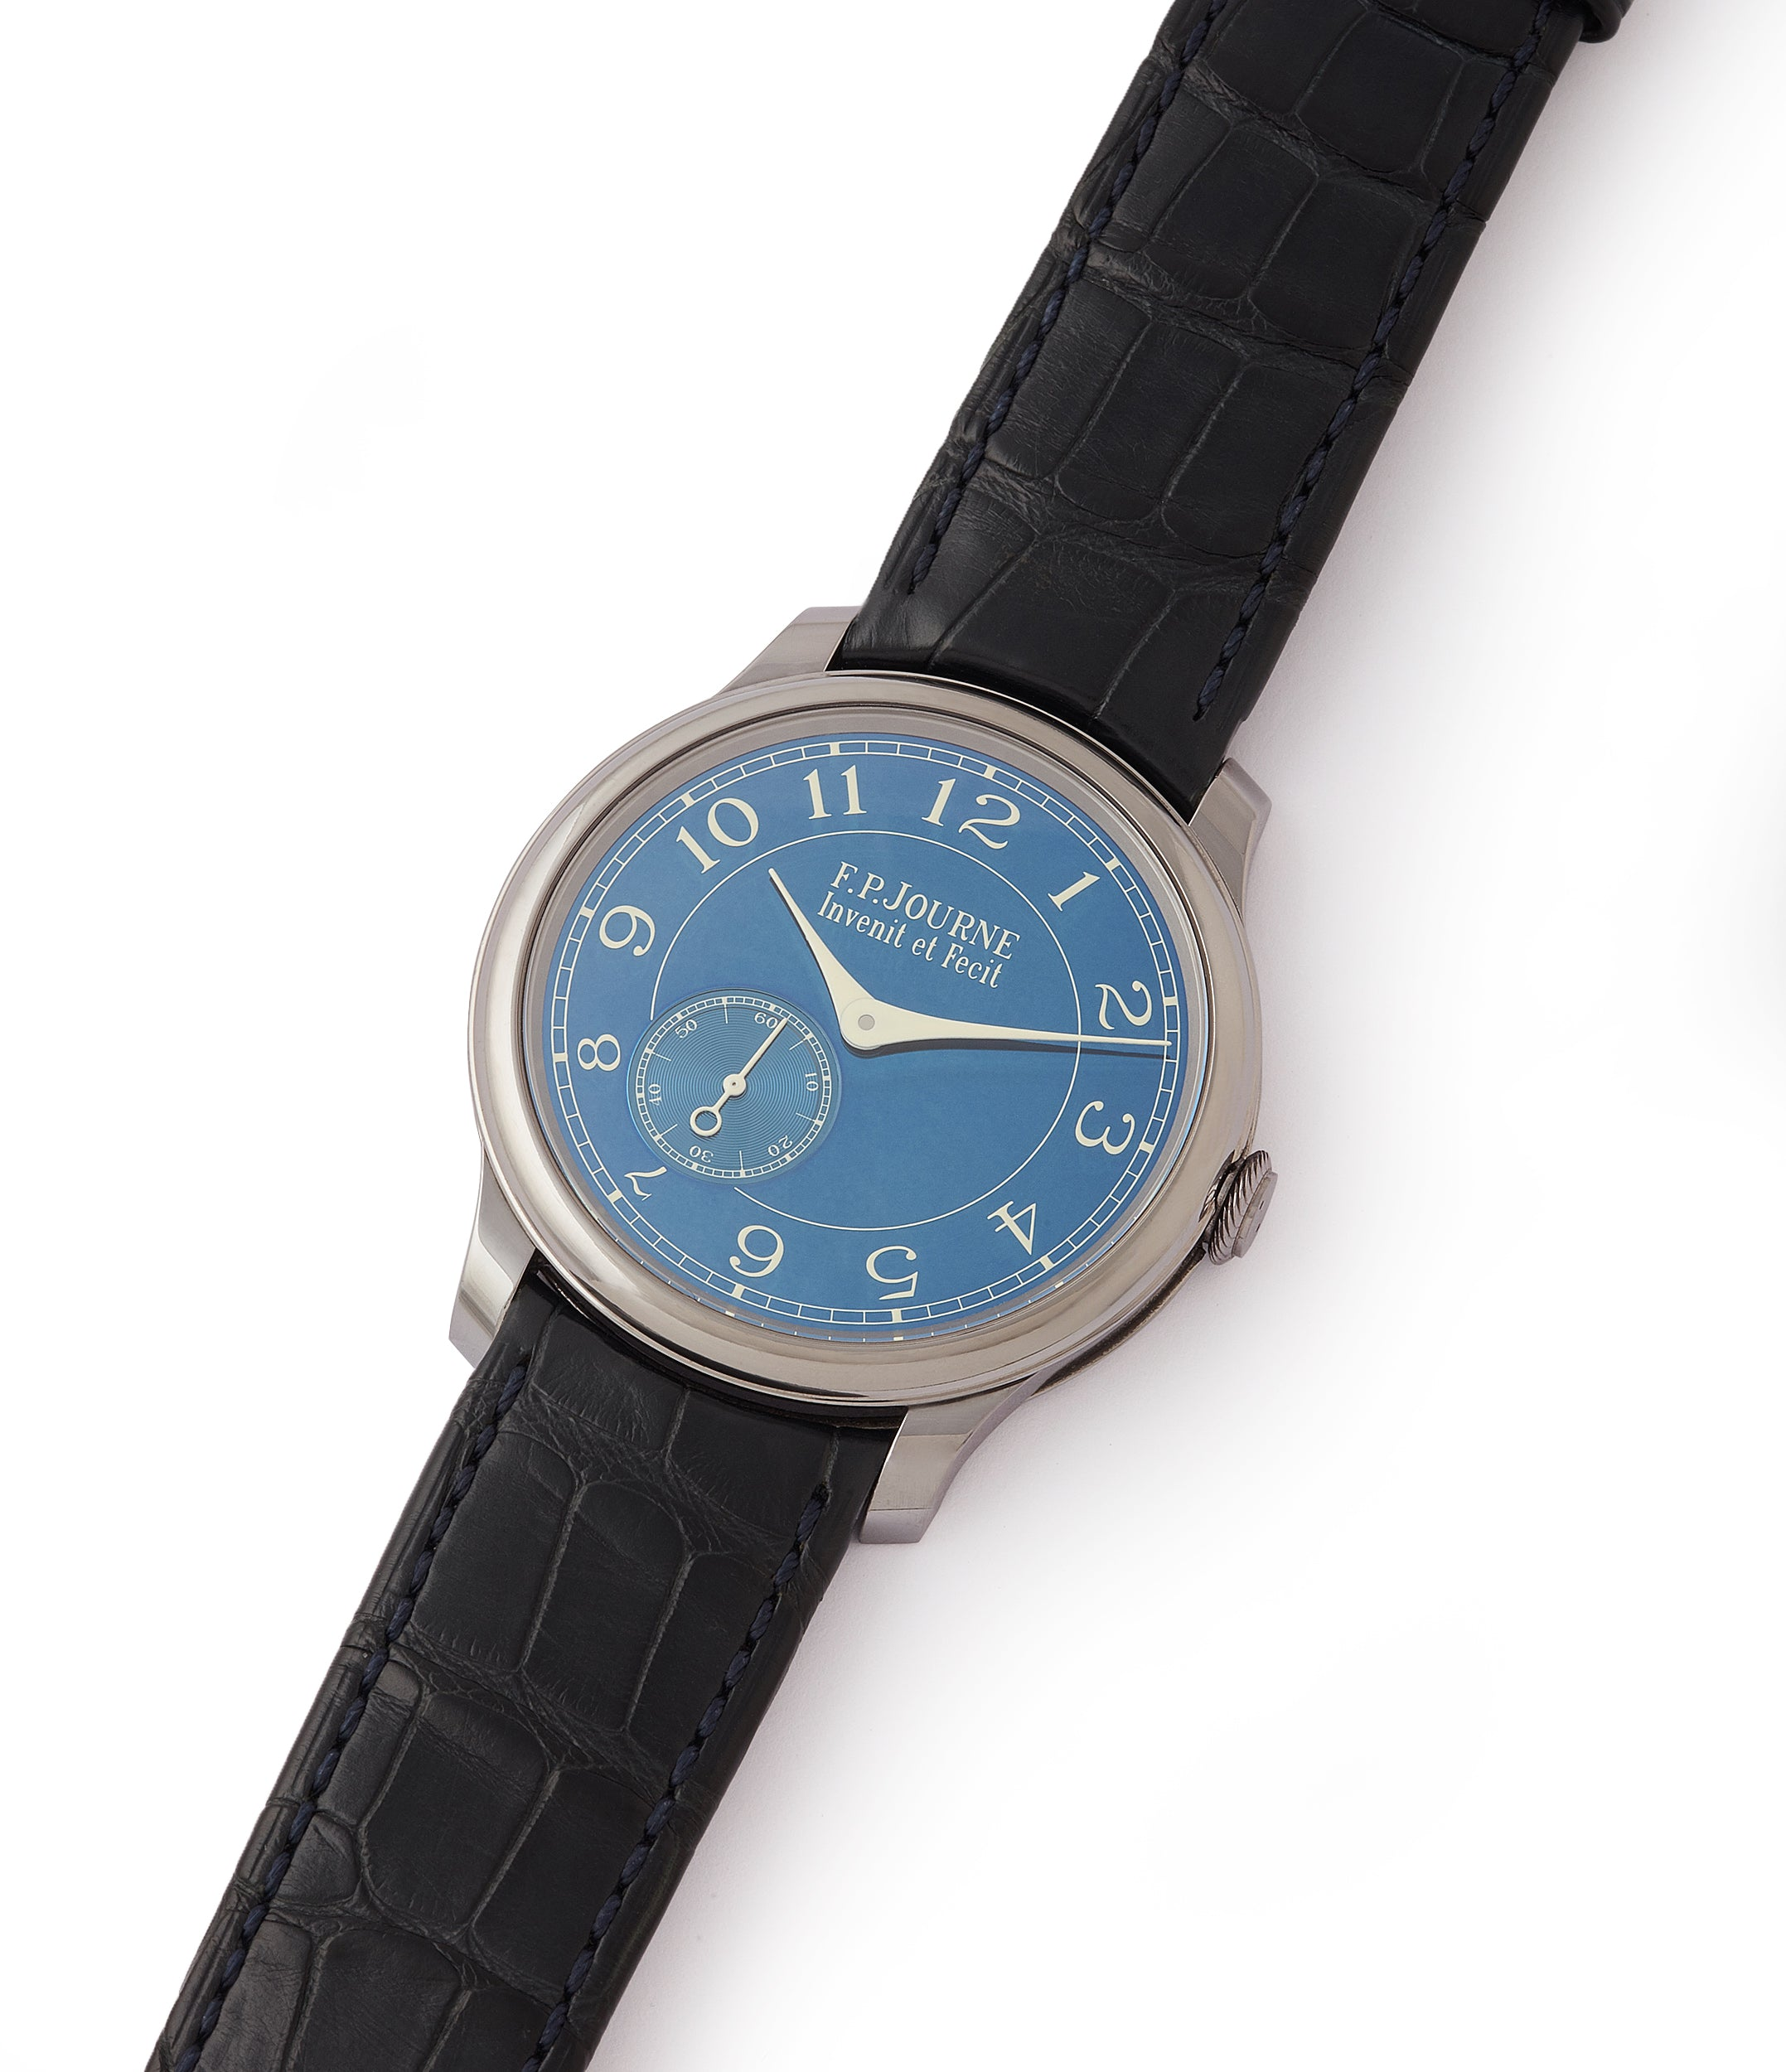 shop pre-owned F. P. Journe Chronometre Bleu tantalum blue dial rare dress watch for sale online at A Collected Man London approved reseller of independent watchmakers